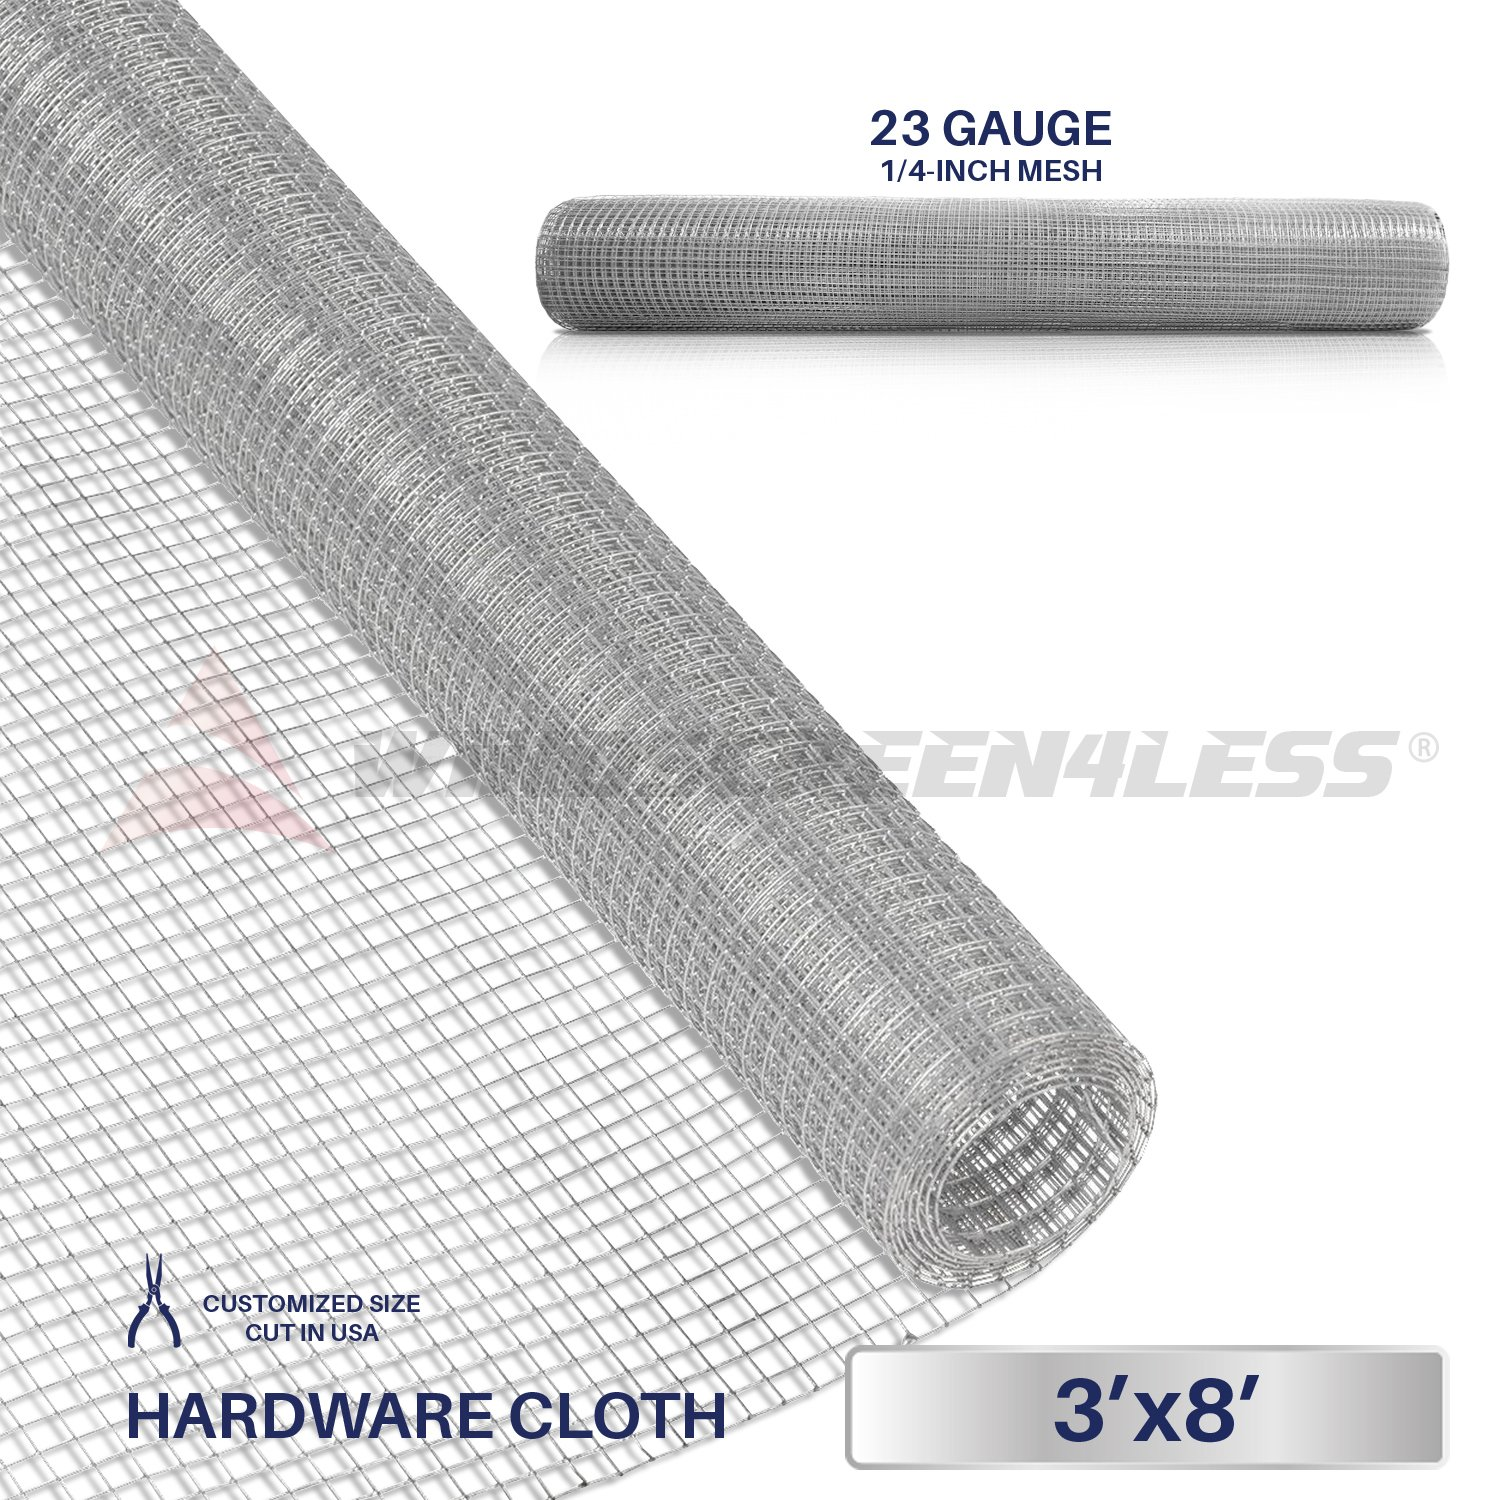 Windscreen4less 23 Gauge 1/4 Inch Square Galvanized Mesh Hardware Cloth 36-Inch Tall Custom Size Cut-to-length 3ft x 8ft